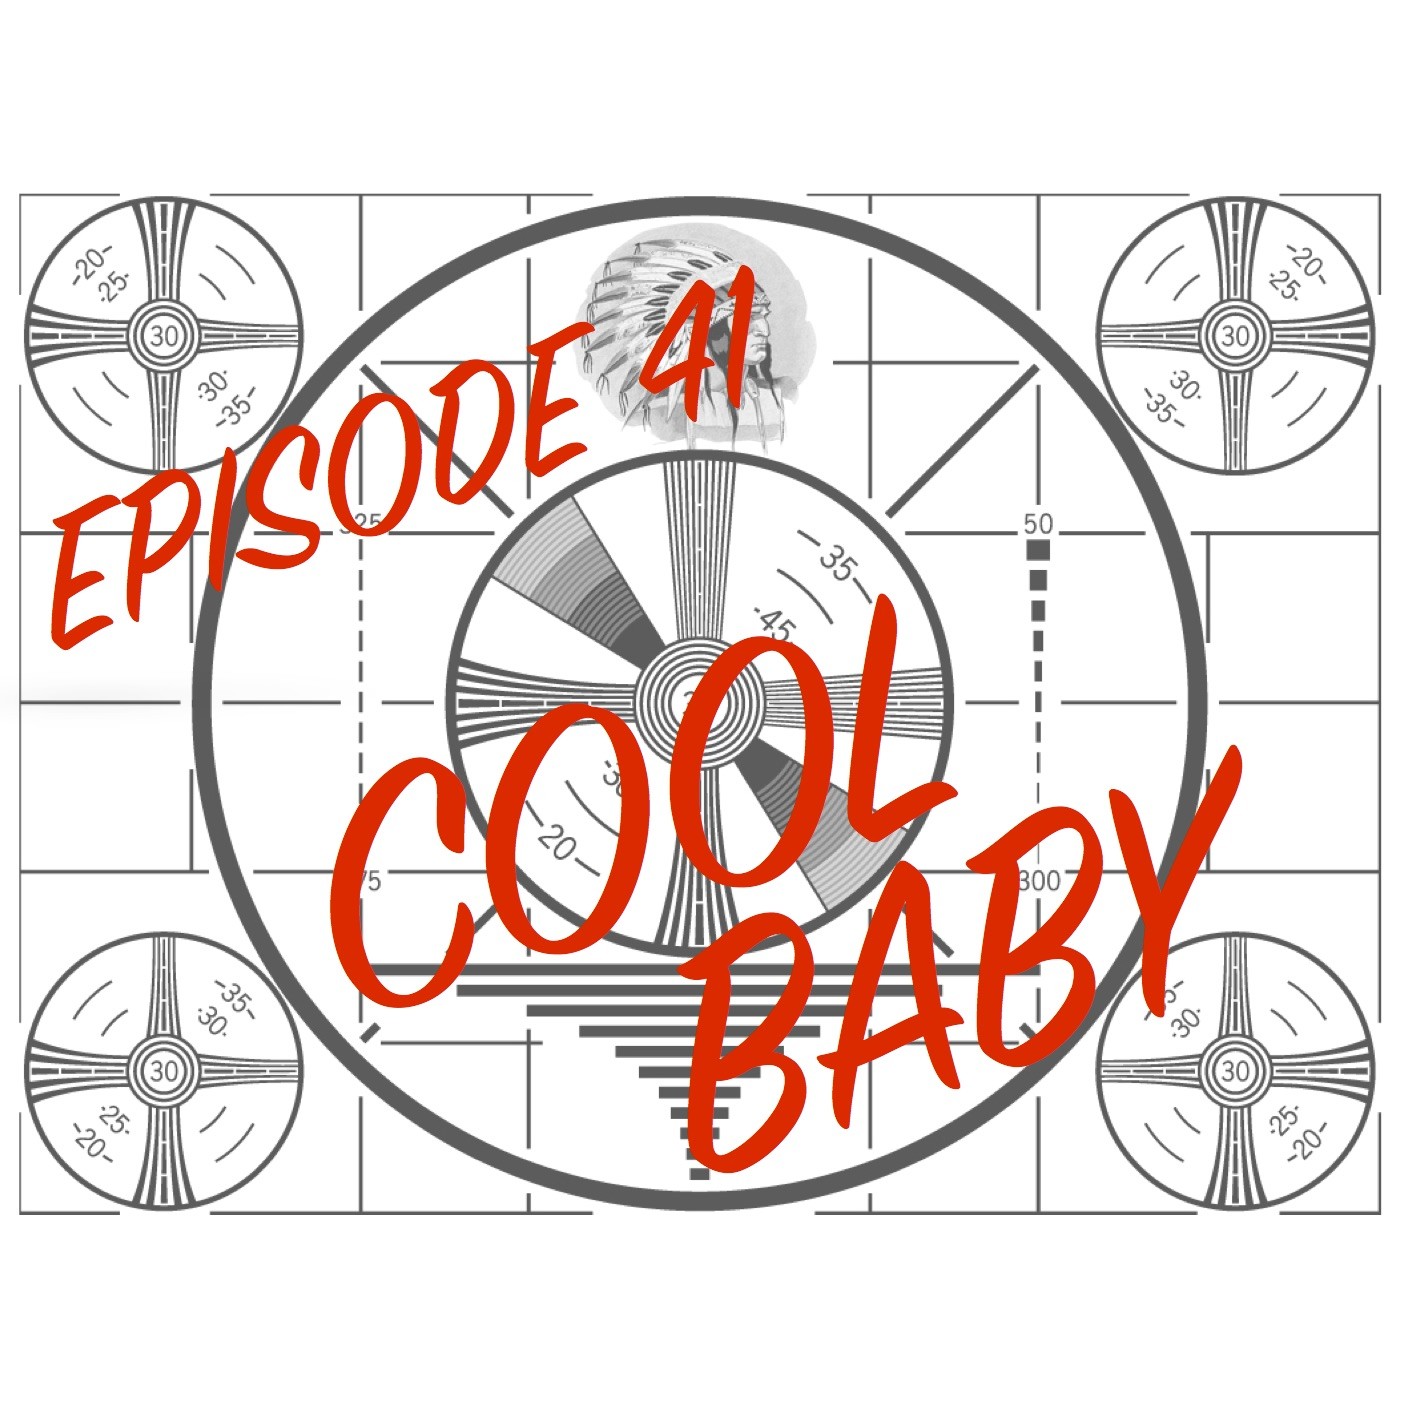 Episode 41 - Cool Baby